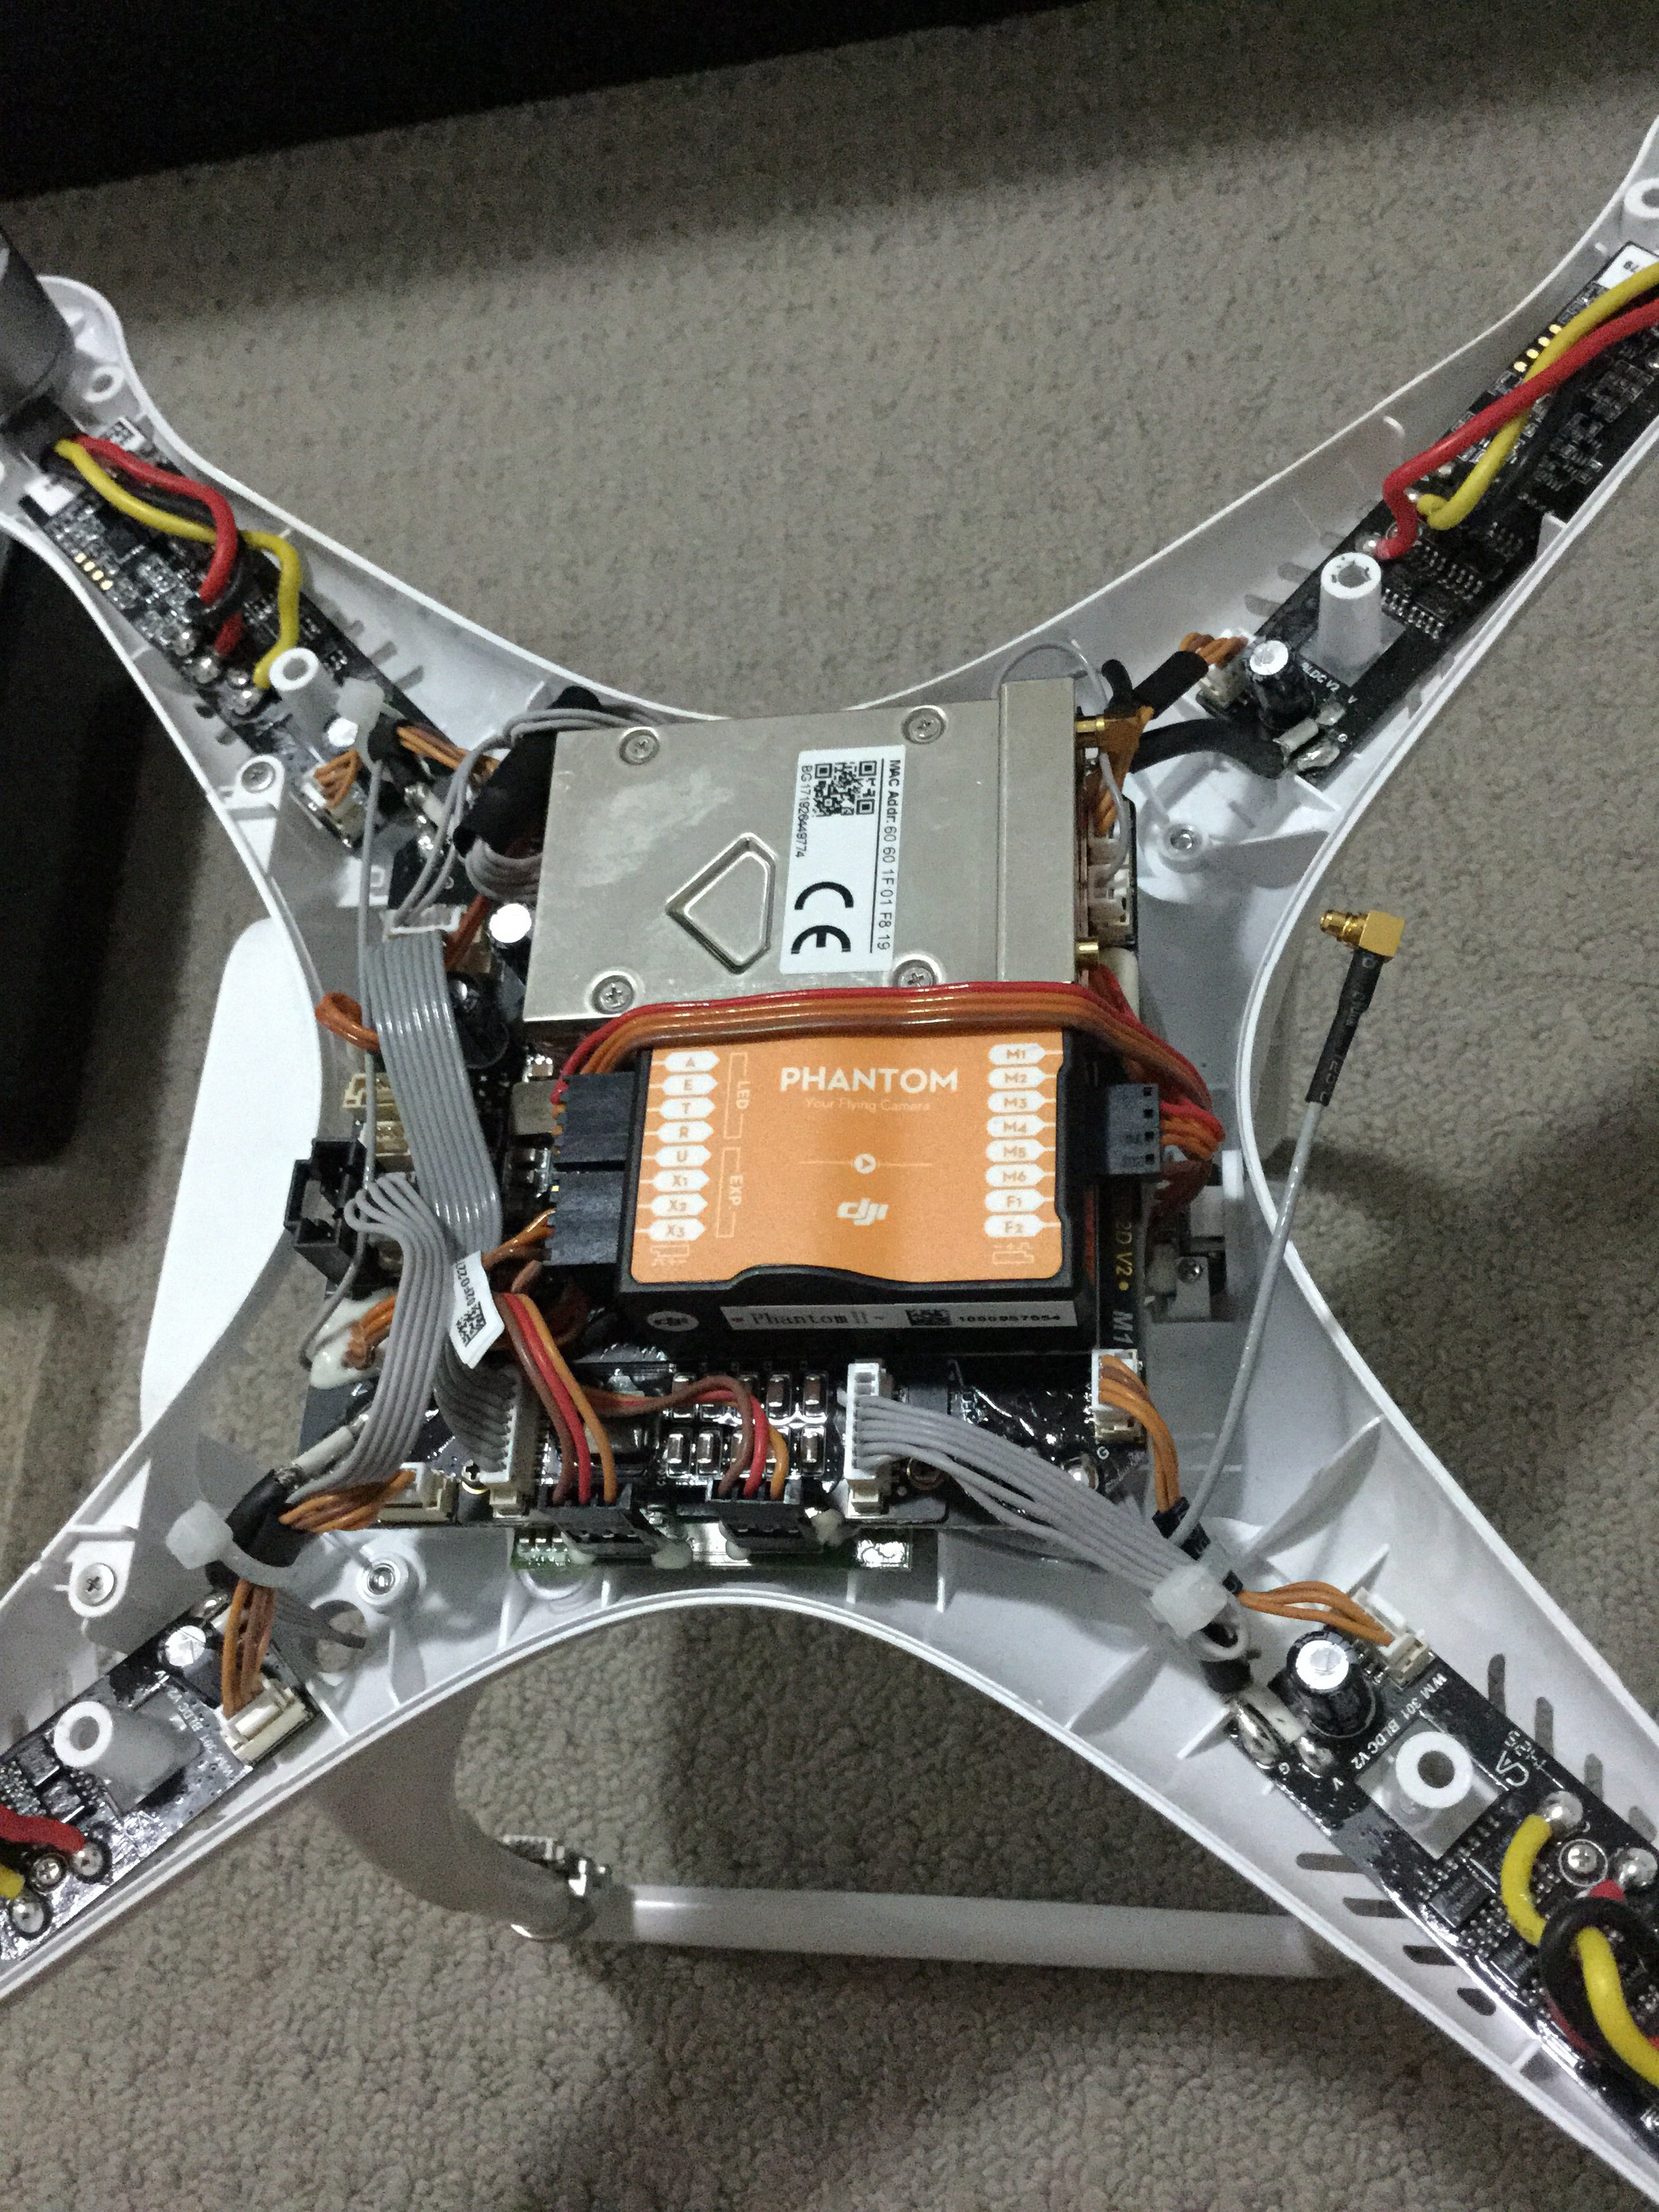 detailed naza wiring diagram? dji phantom drone forum phantom 2 wiring diagram at mifinder.co